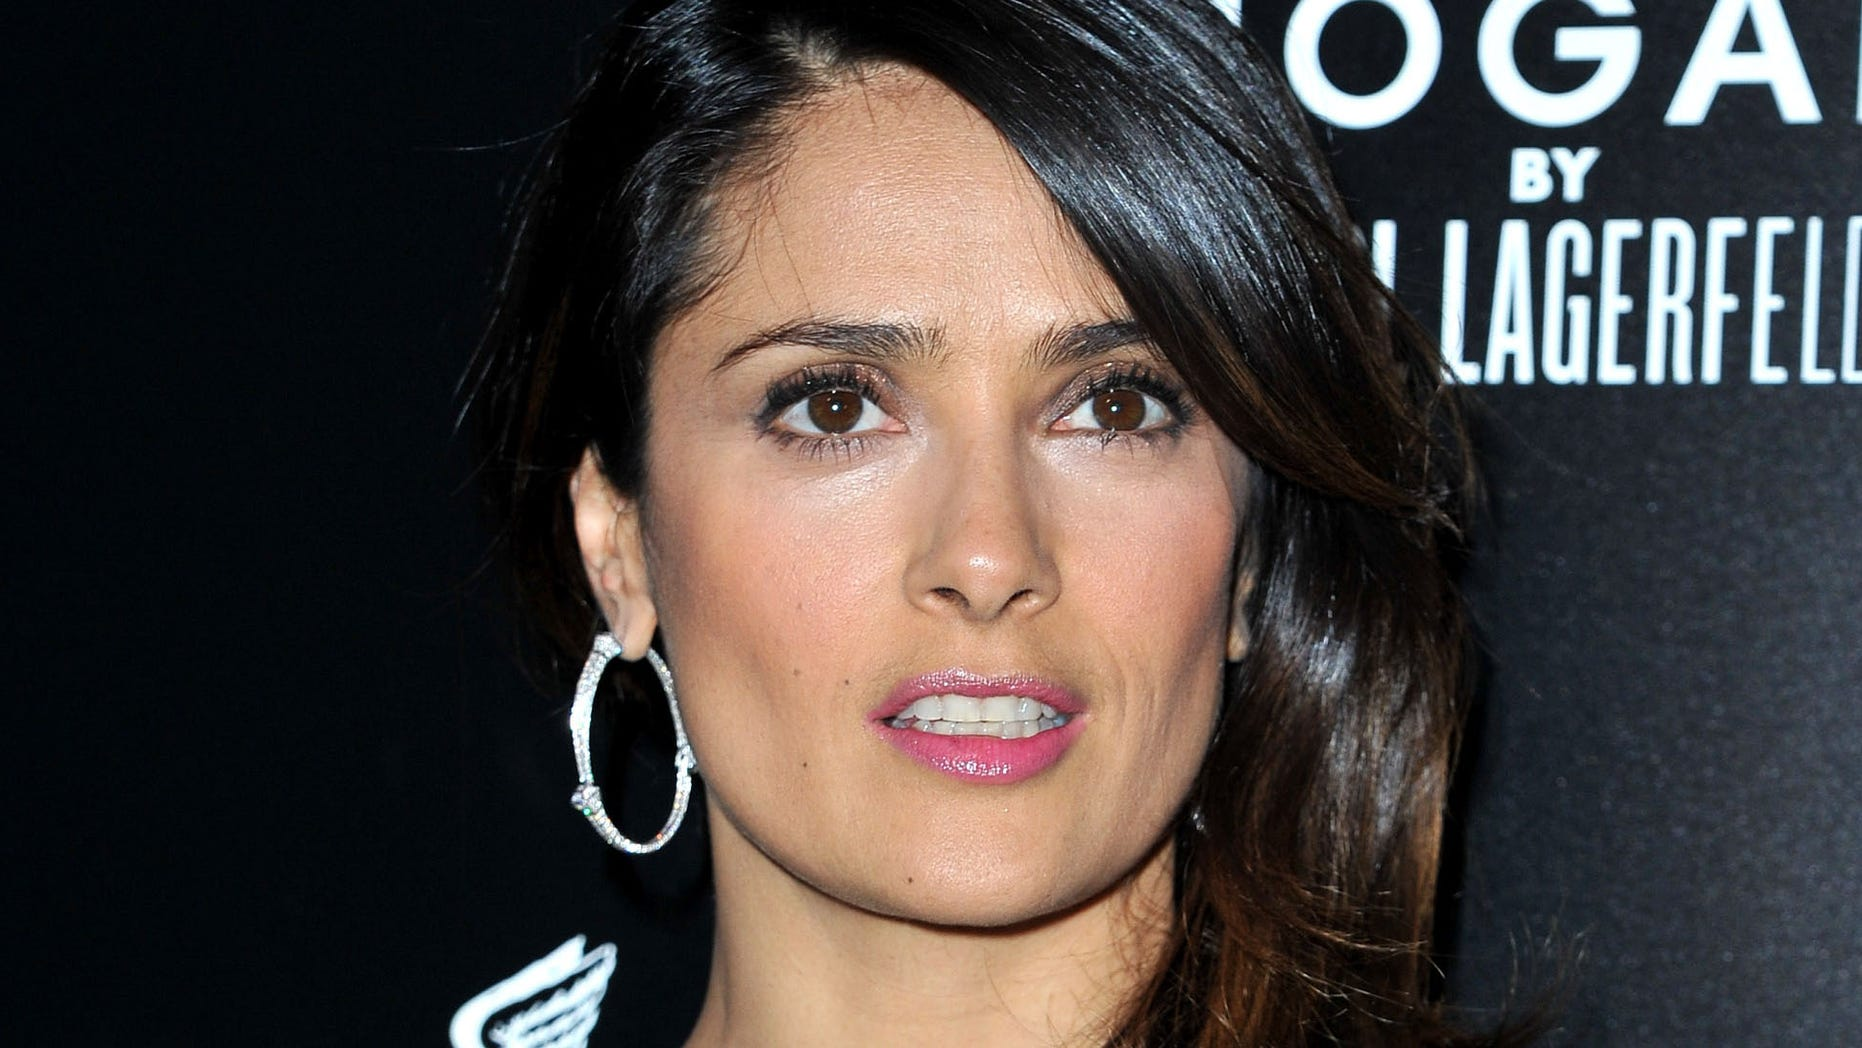 PARIS, FRANCE - MARCH 01:  Salma Hayek attends the Hogan by Karl Lagerfeld Ready-To-Wear Fall/Winter 2012 Presentation and Cocktail as part of Paris Fashion Week at Galerie Bailly on March 1, 2012 in Paris, France.  (Photo by Pascal Le Segretain/Getty Images)